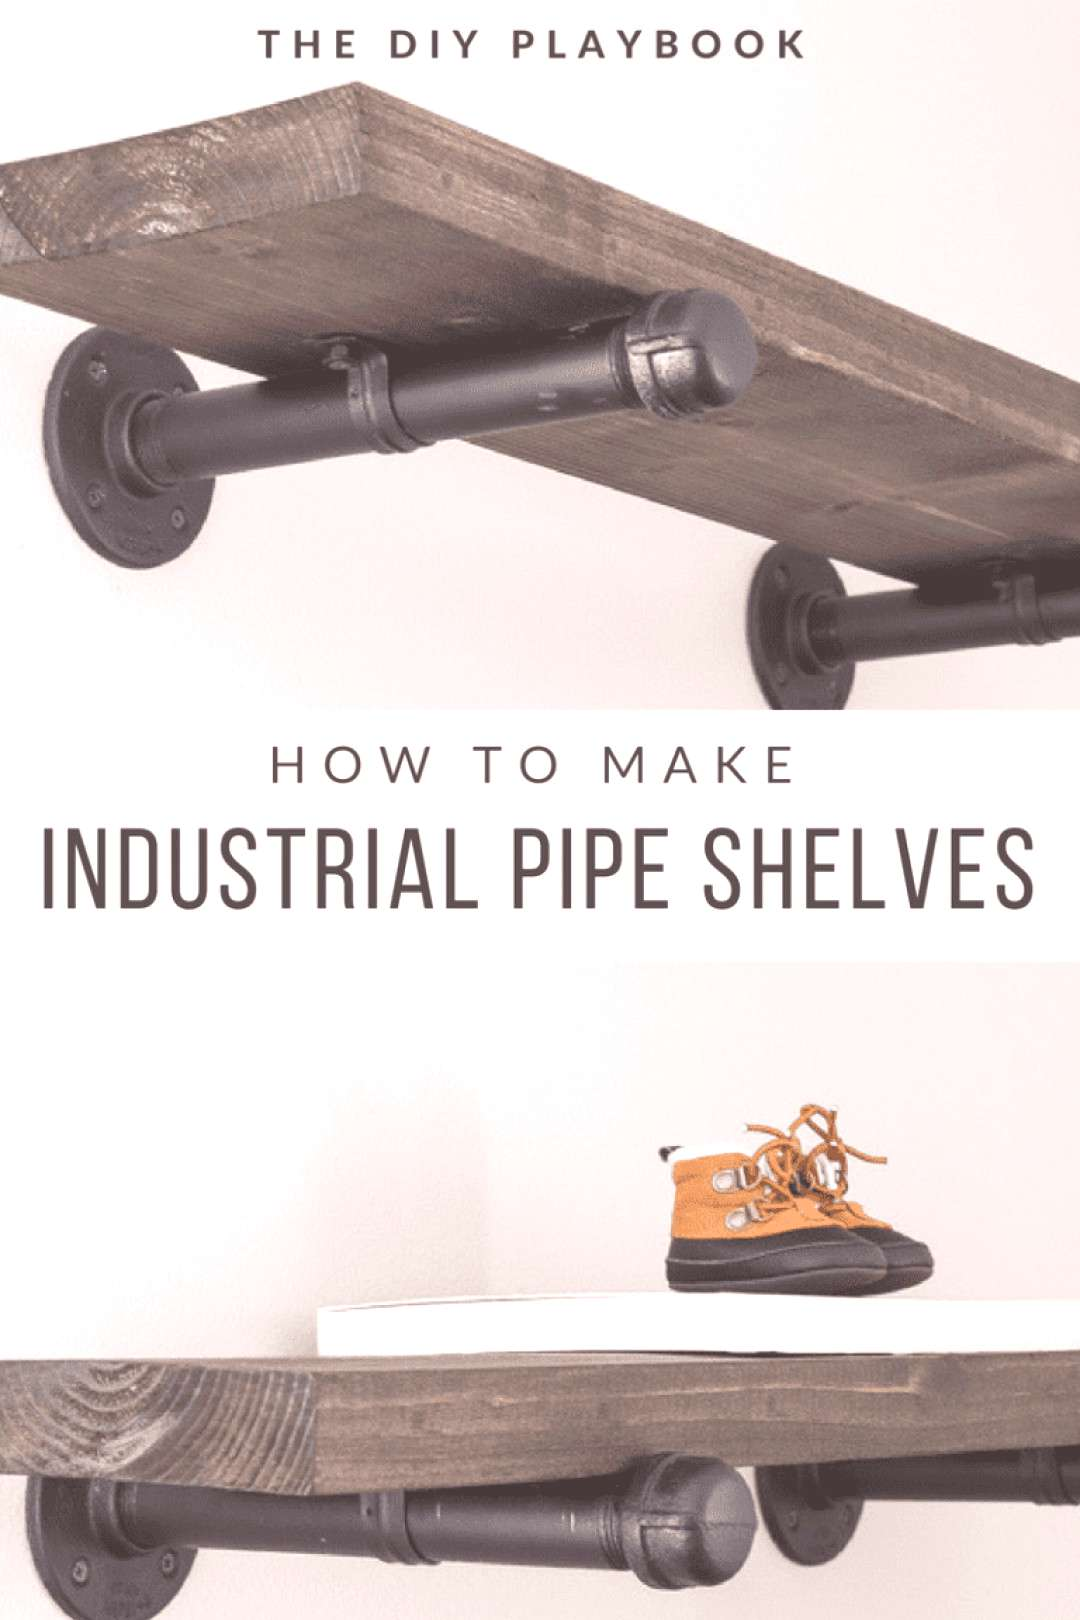 How to Build DIY Industrial Galvanized Pipe Shelves   The DIY Playbook